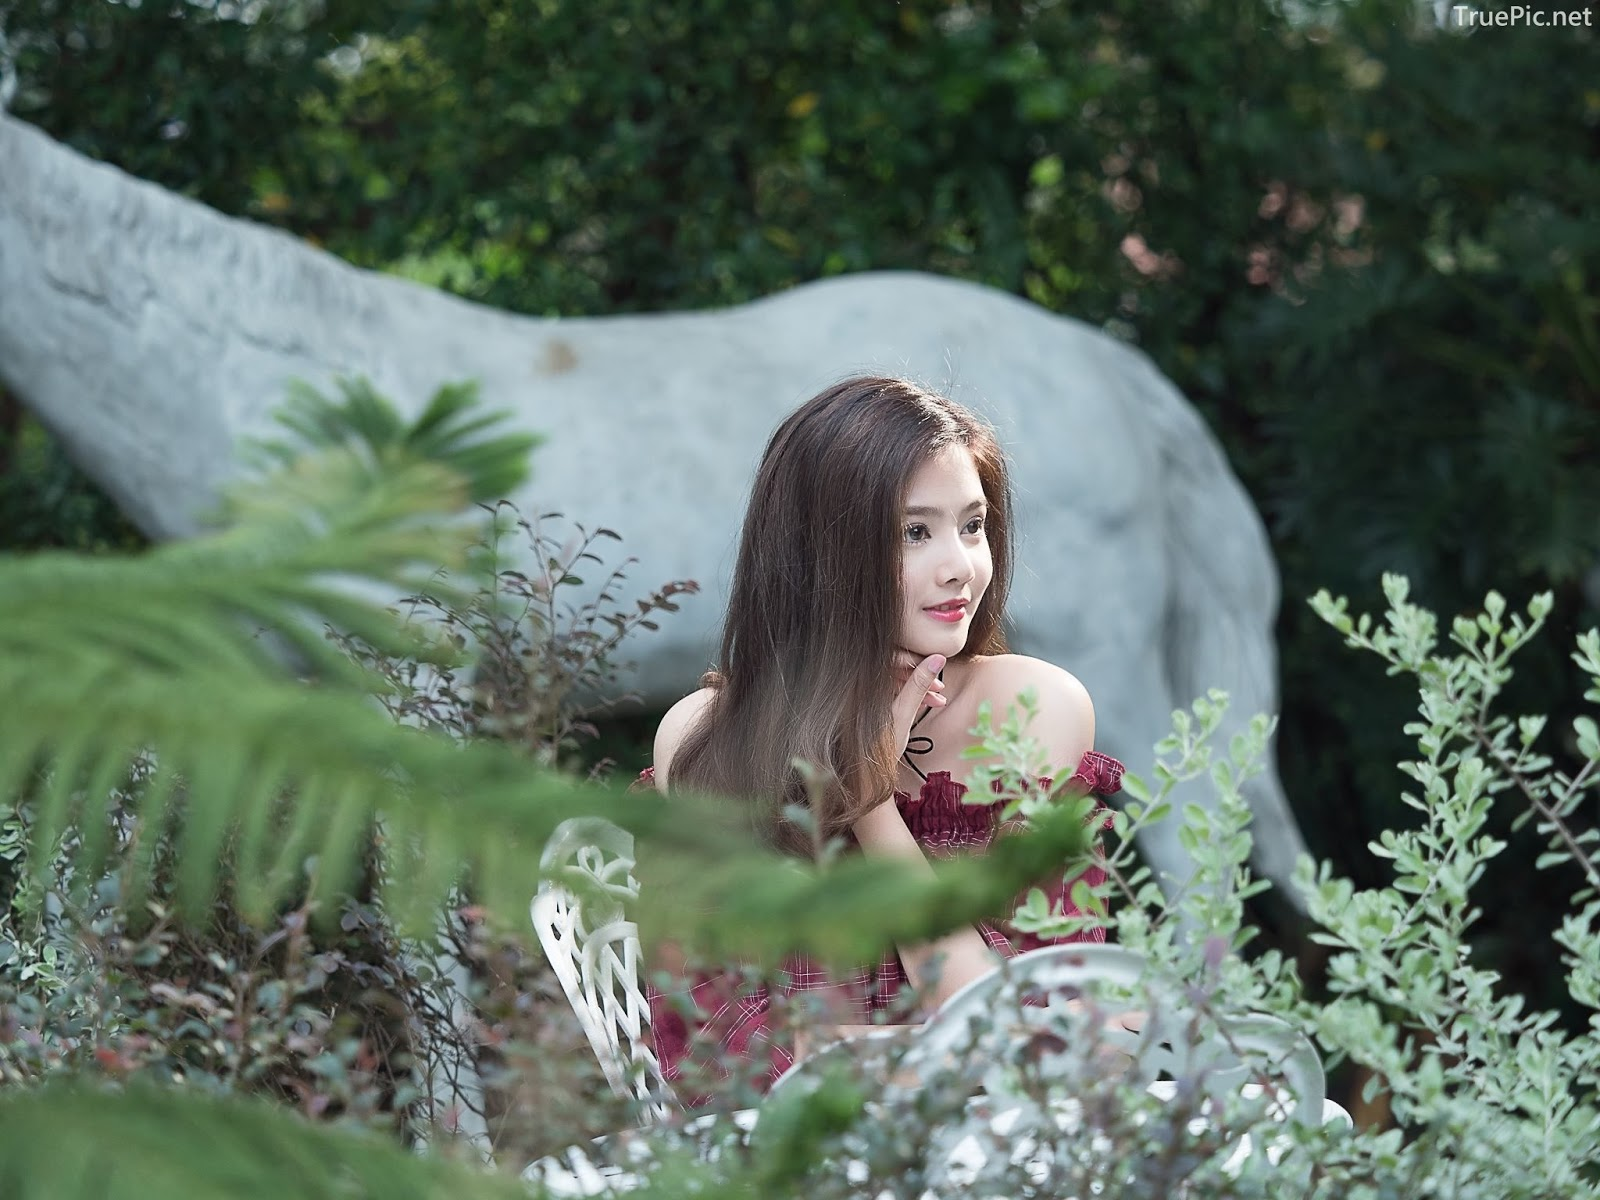 Thailand pretty girl Aintoaon Nantawong – The most beautiful flower in the garden - Picture 3